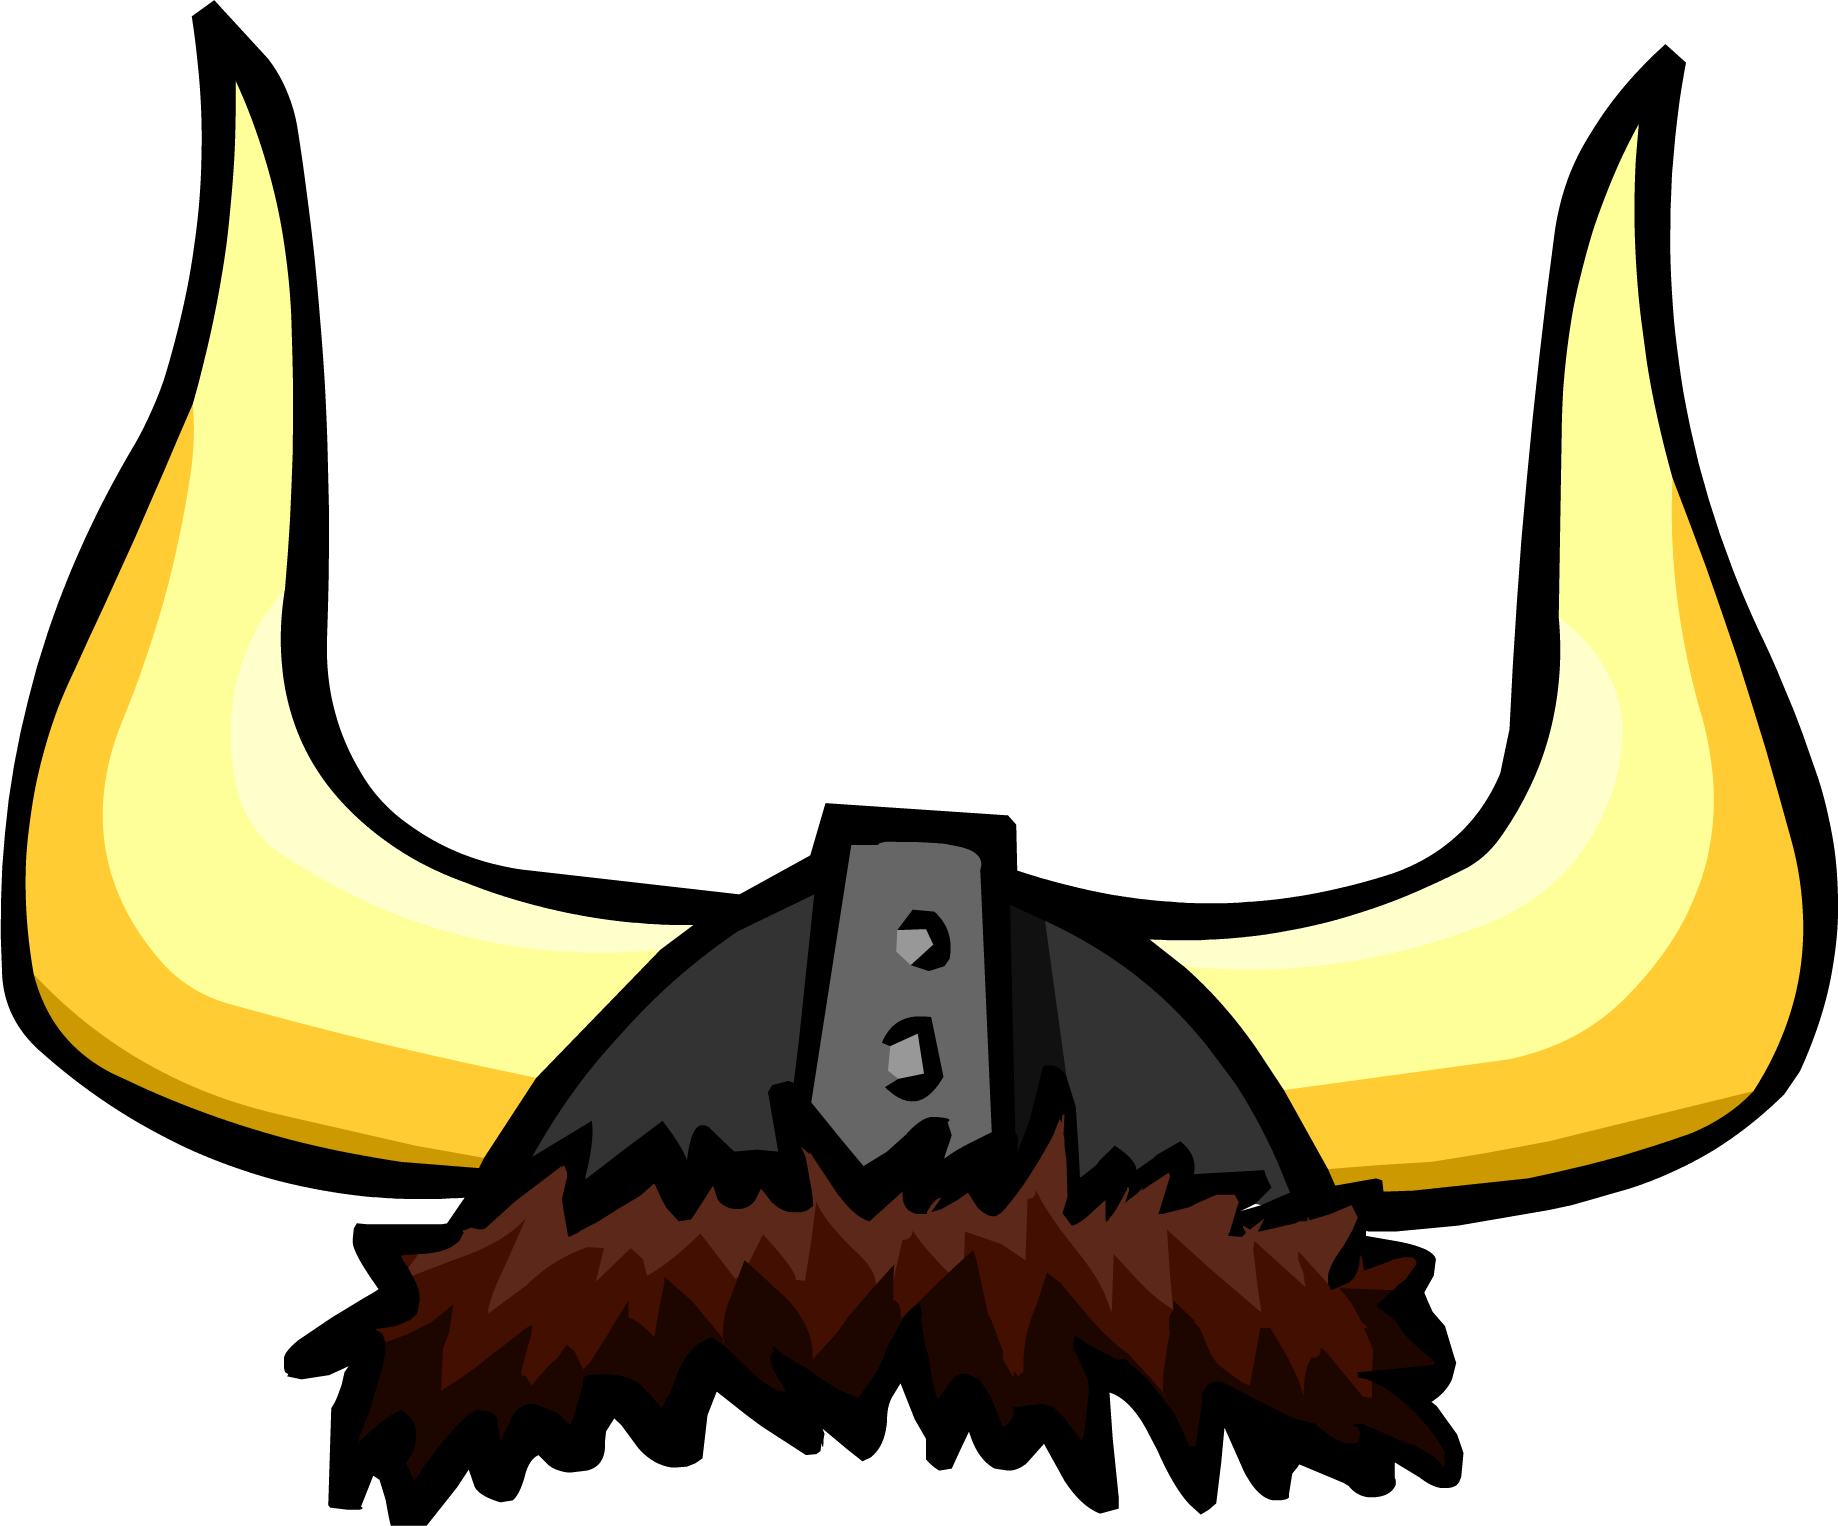 Hat clipart admiral. Black viking helmet club